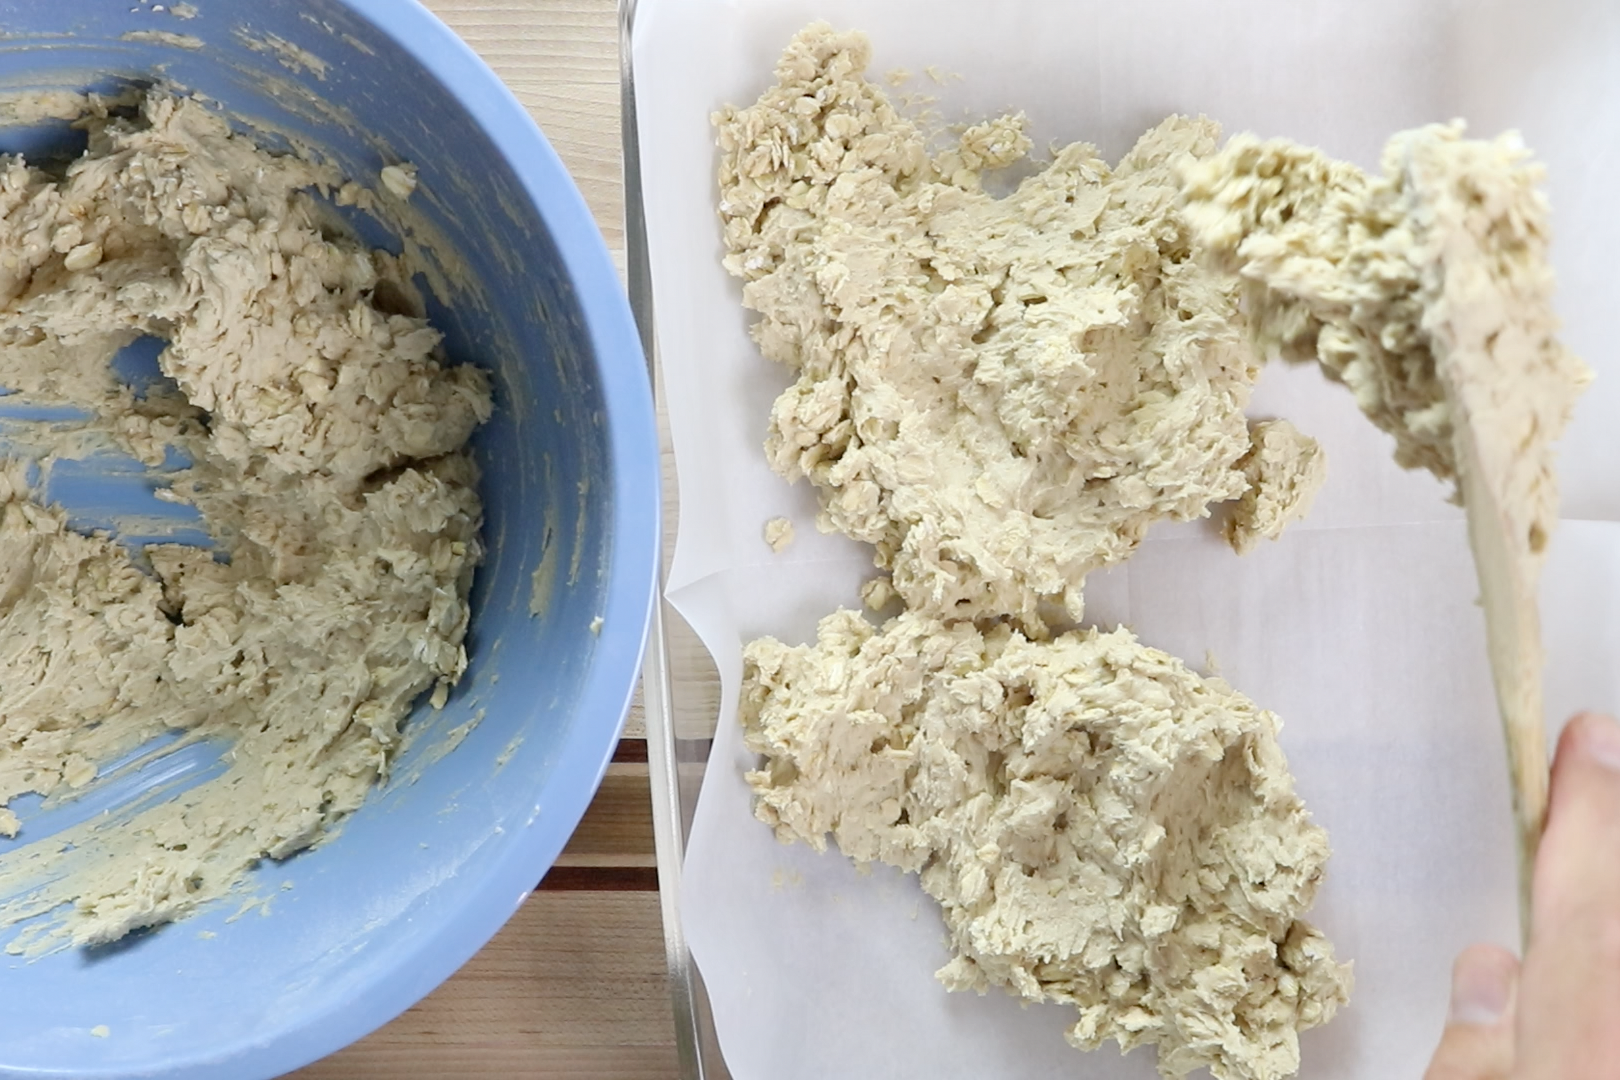 7. Spread ½ of the mixture into the prepared baking pan. It will be sticky. -